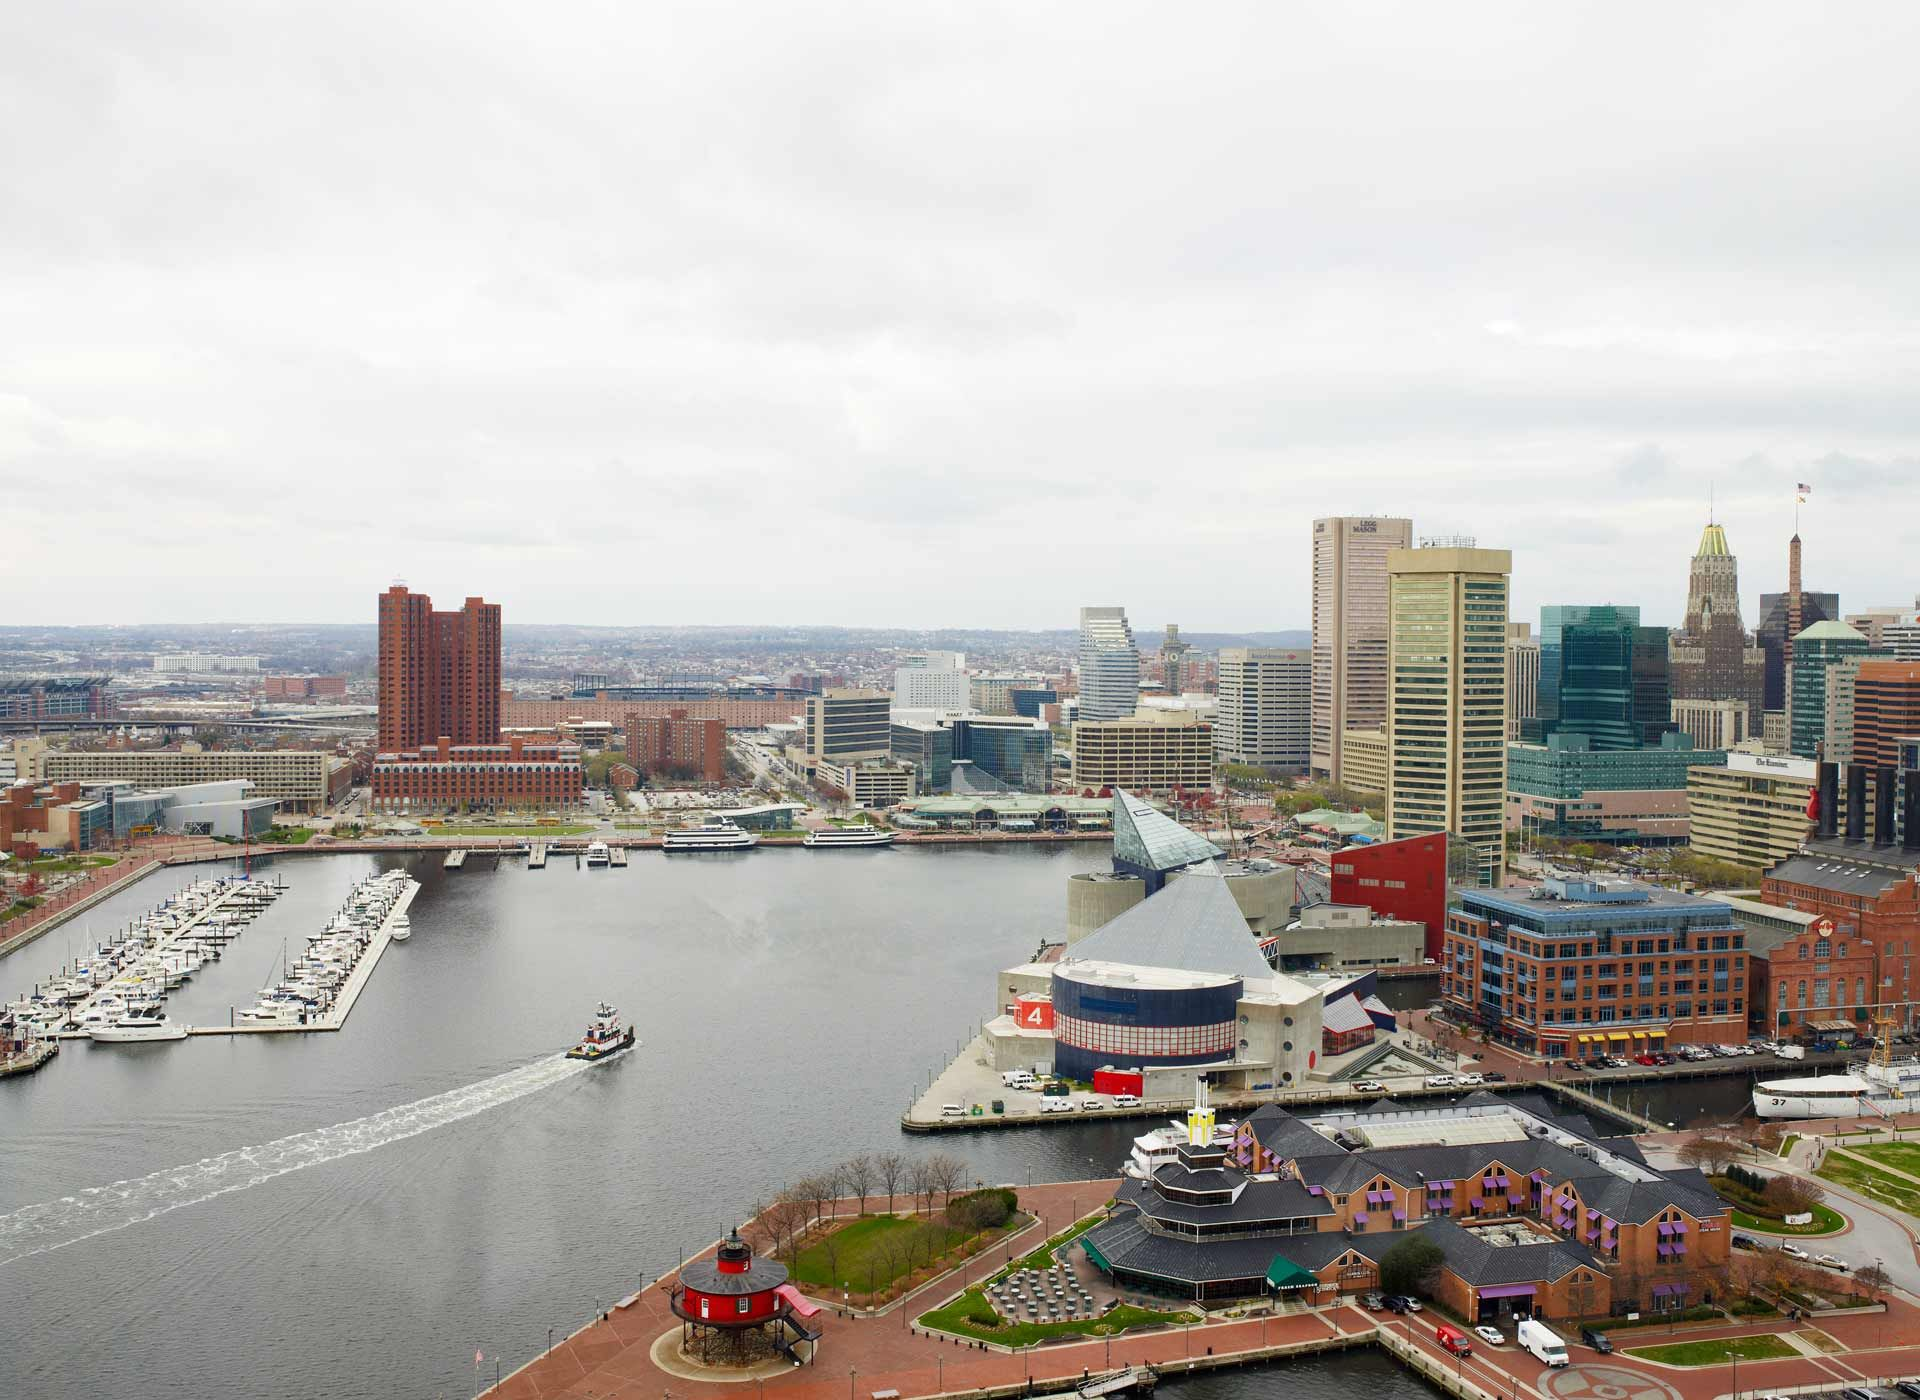 An Image Of The Inner Harbor In Baltimore